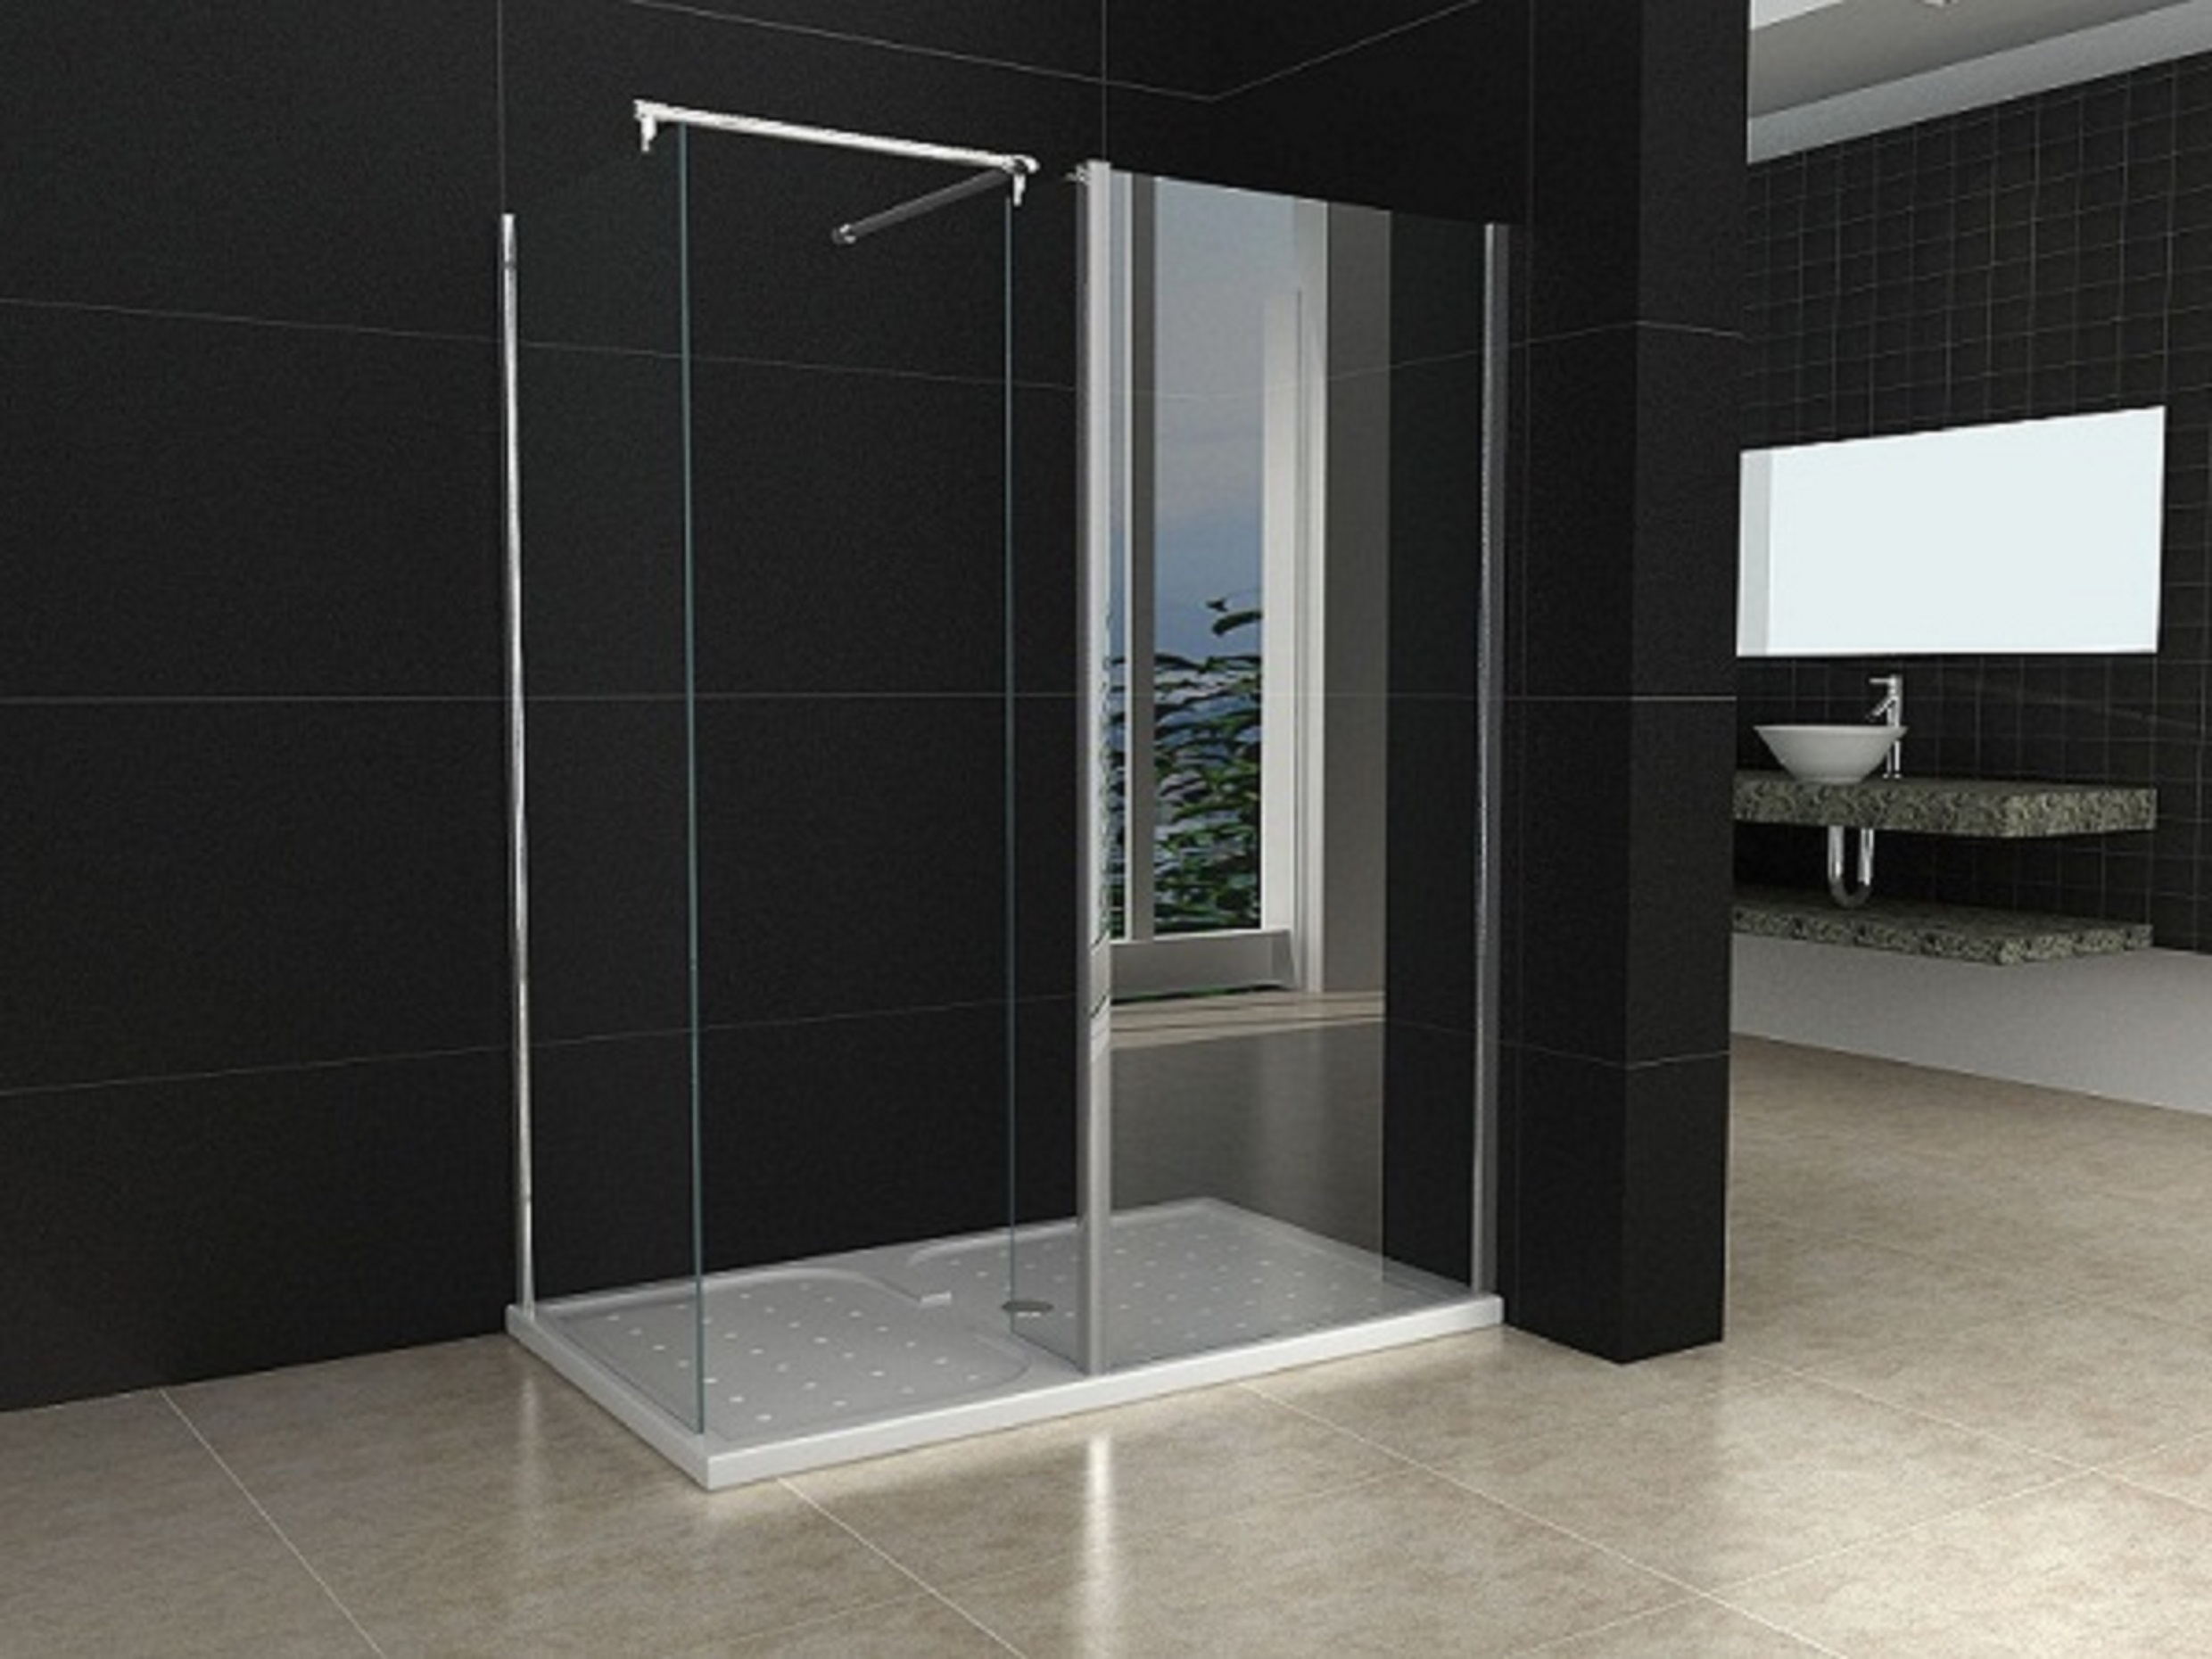 1200x800mm walk in shower enclosure door shower tray for Walk in shower tray